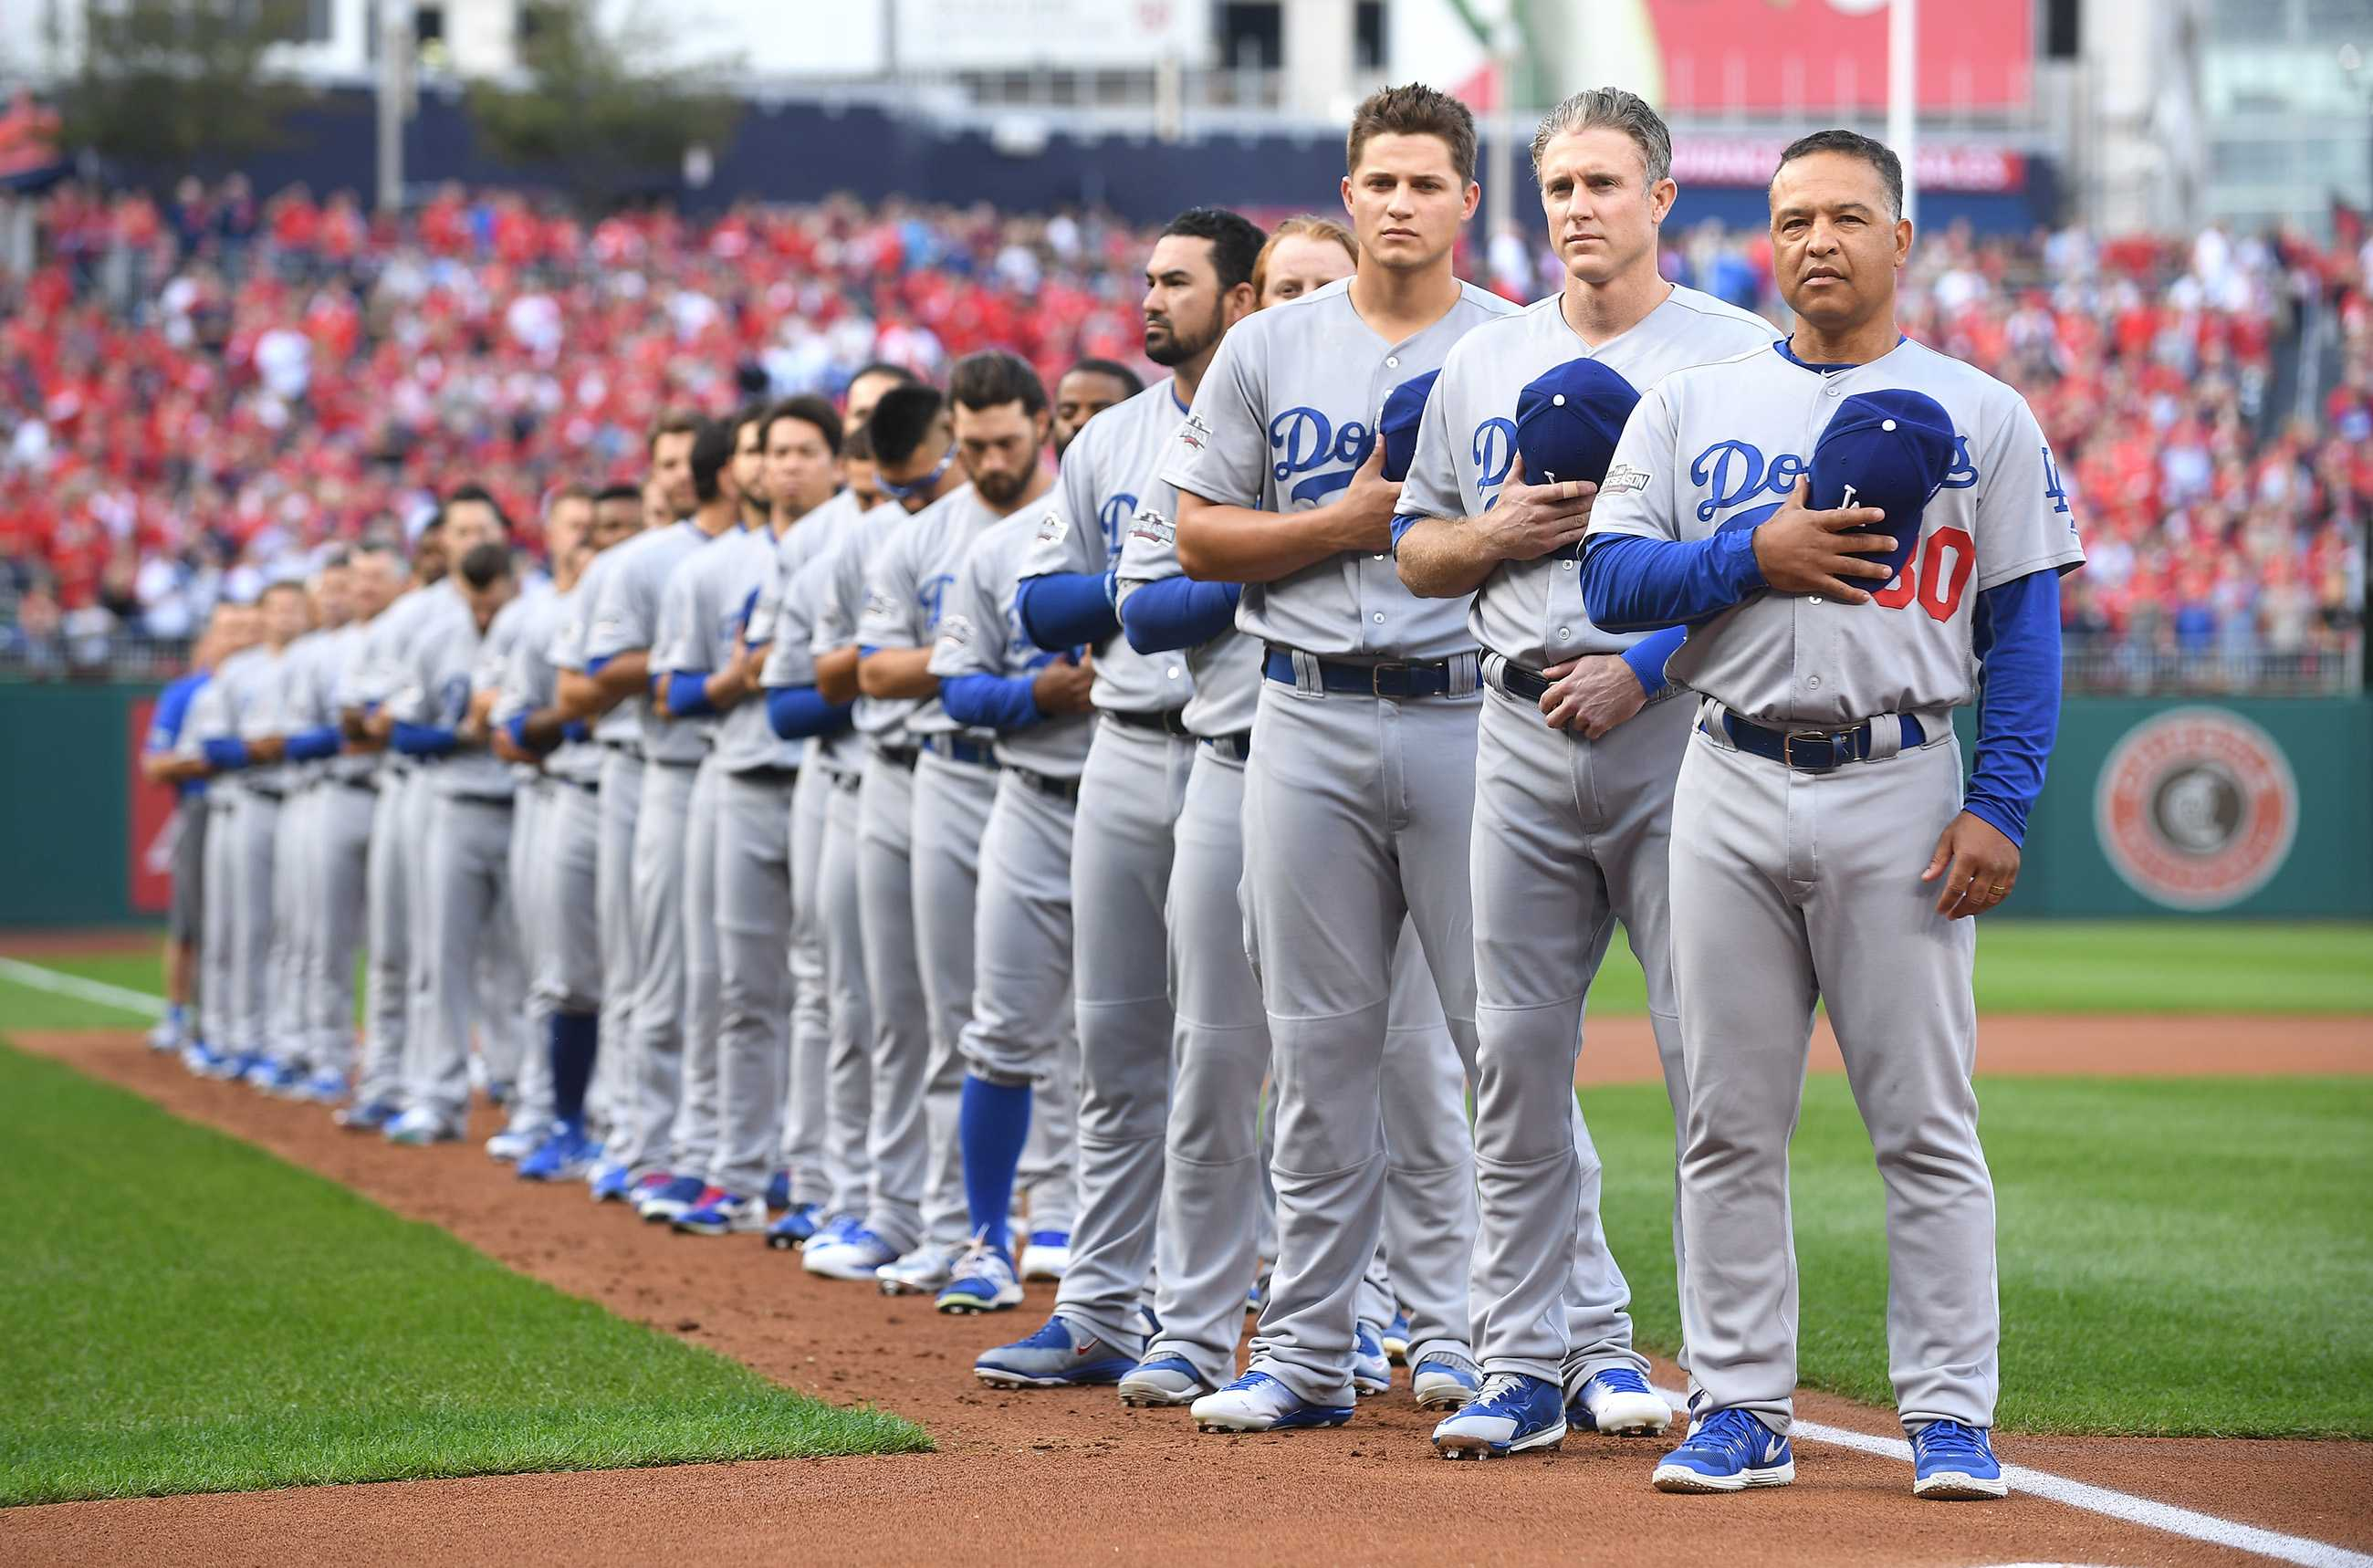 Carlos Ruiz, Chase Utley Help Dodgers Advance To NLCS